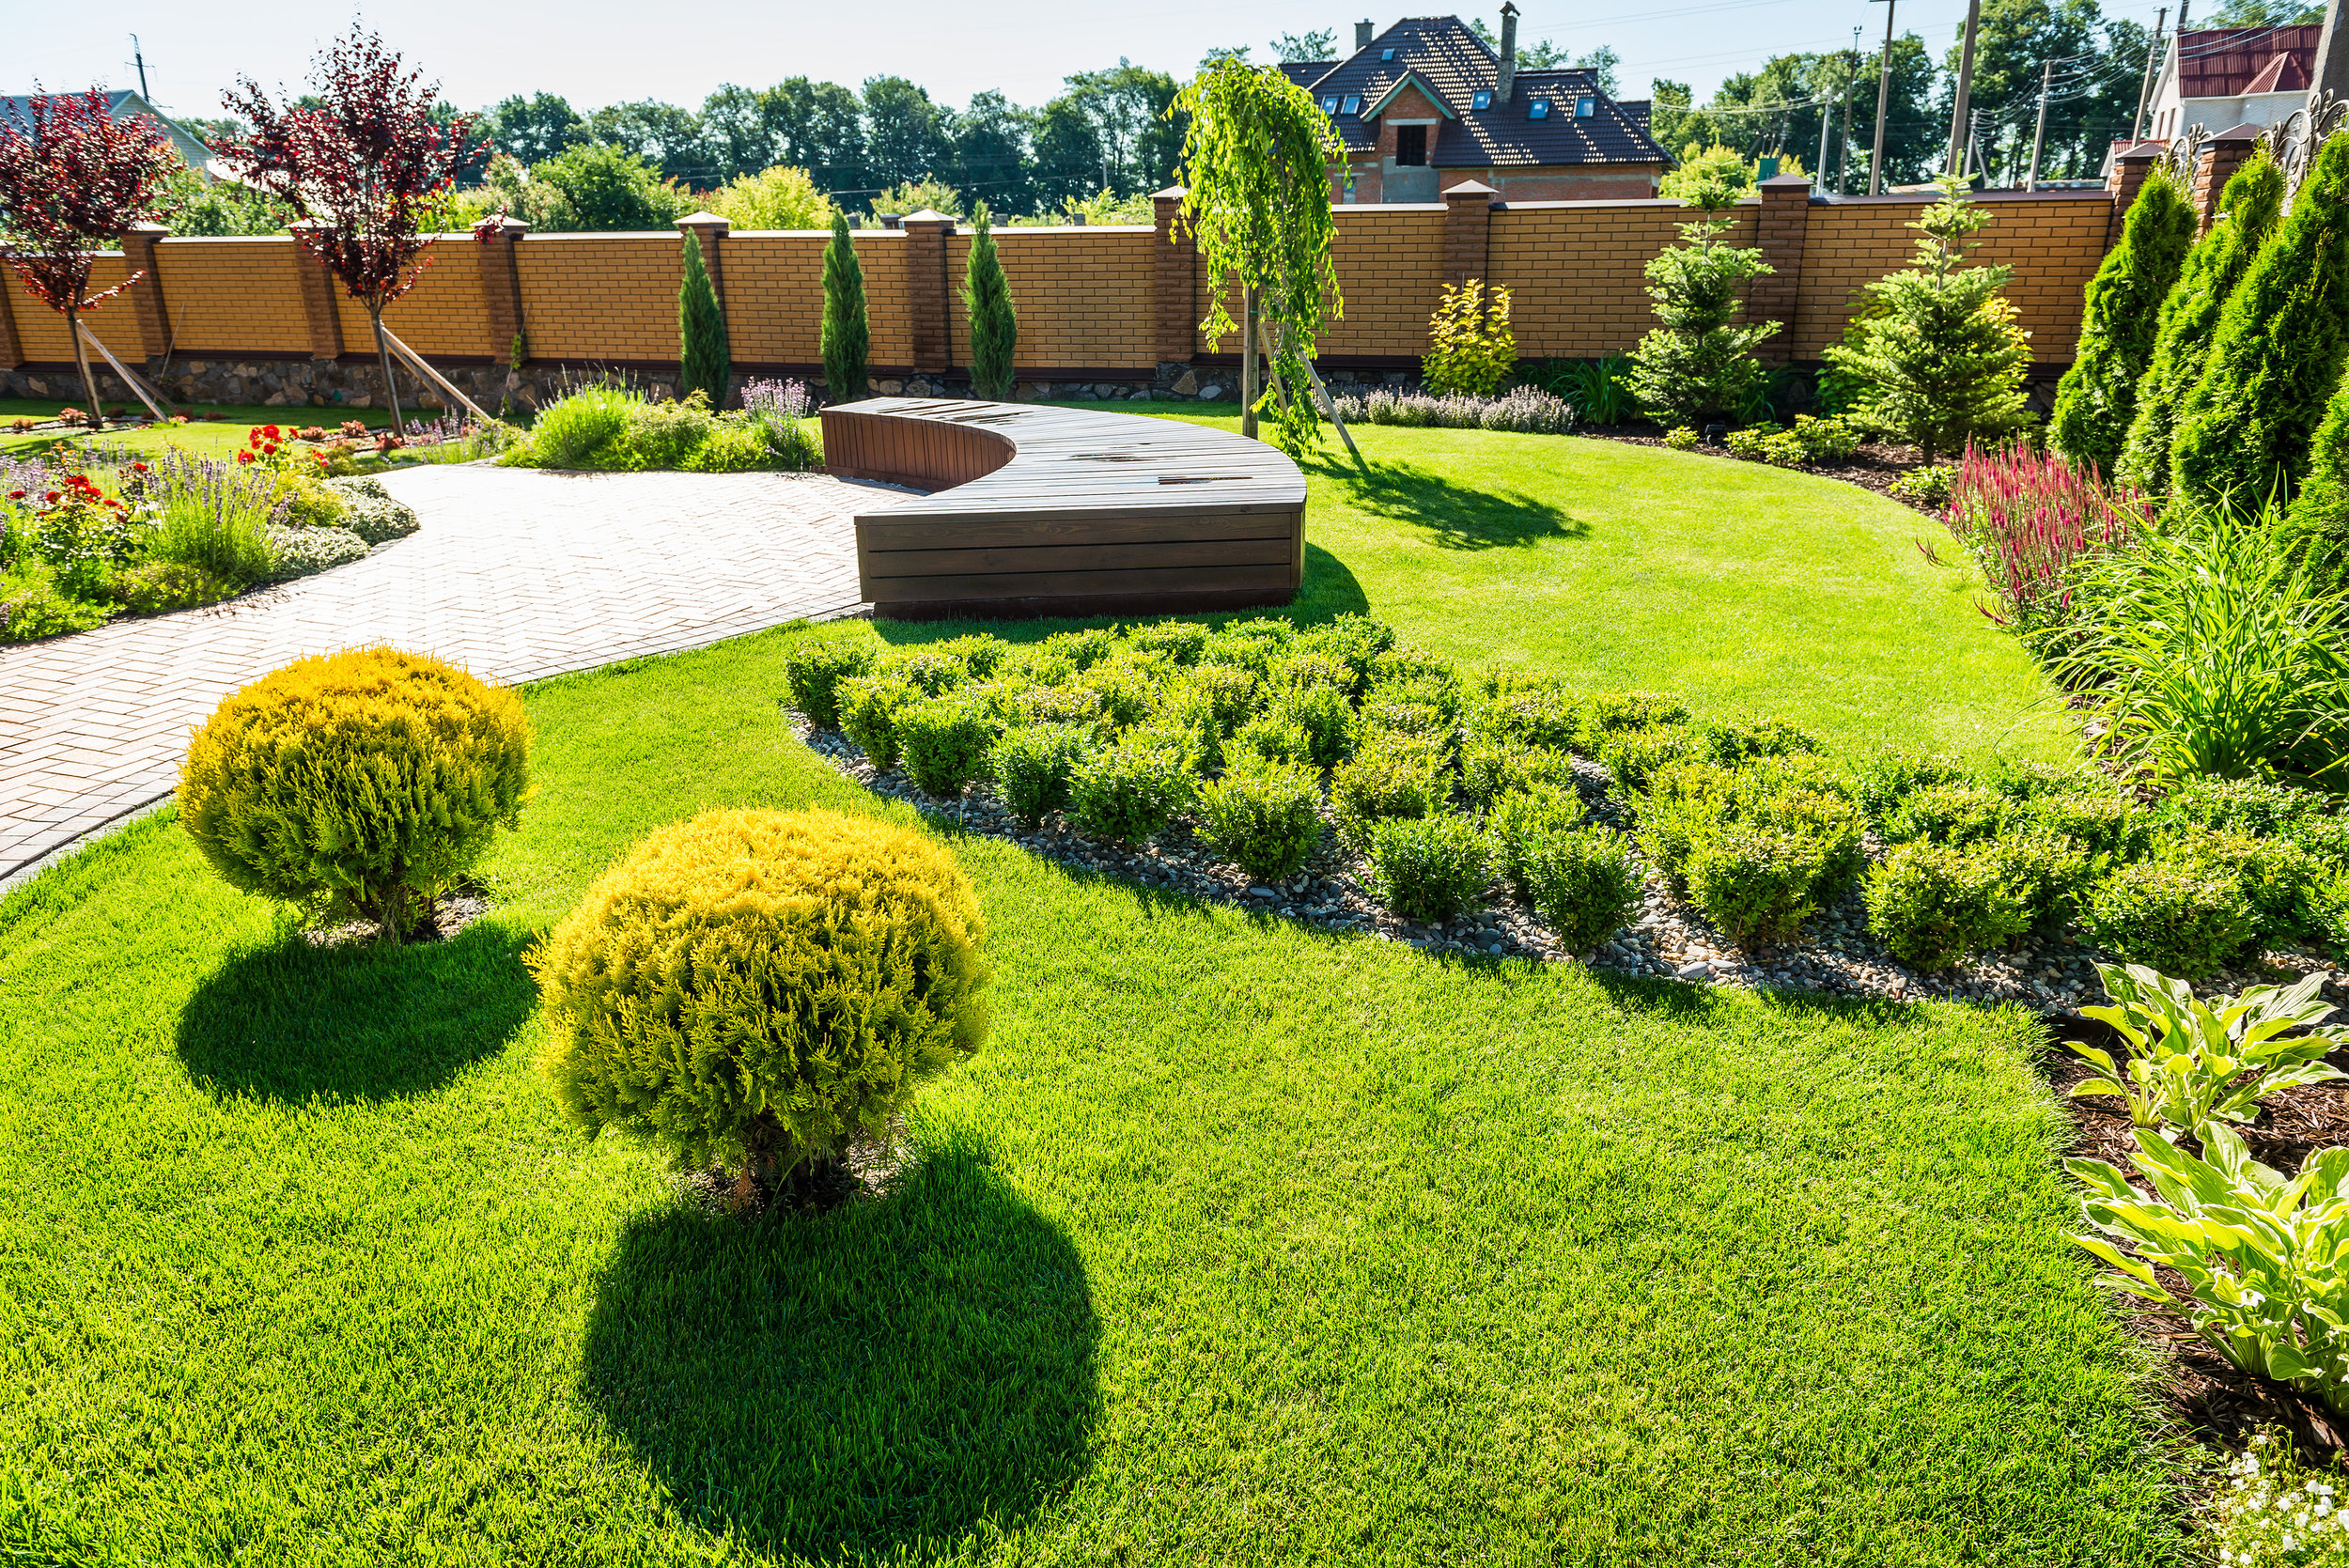 bigstock-Beautiful-Landscaping-With-Bea-185709037.jpg